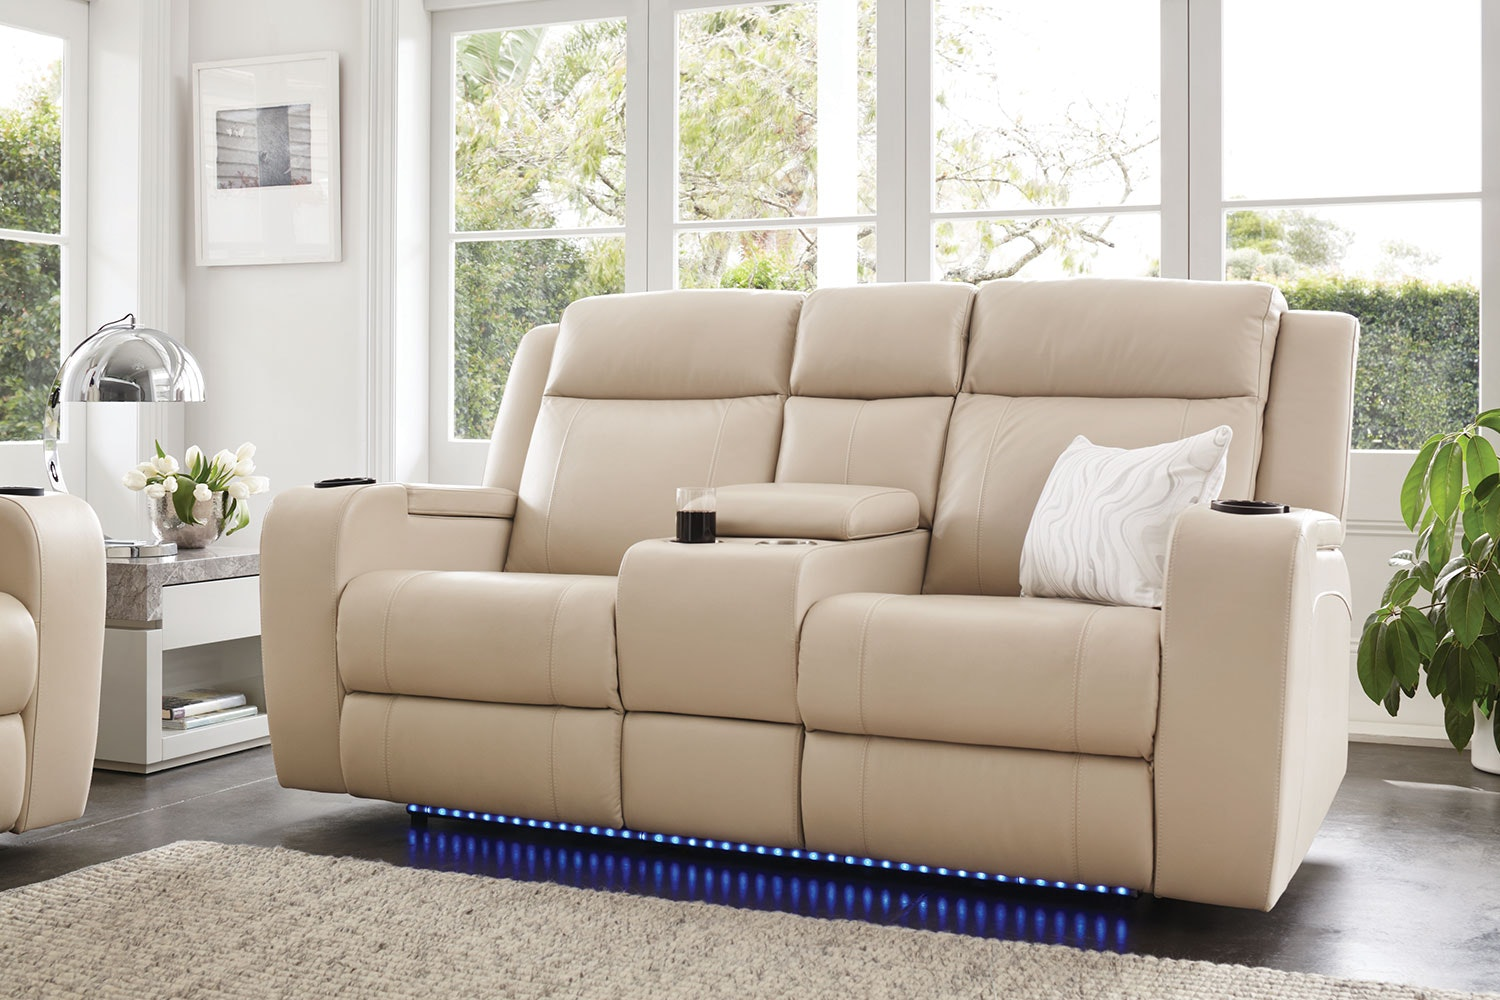 Ivory Marina 2 Seater Leather Recliner Sofa by Synargy